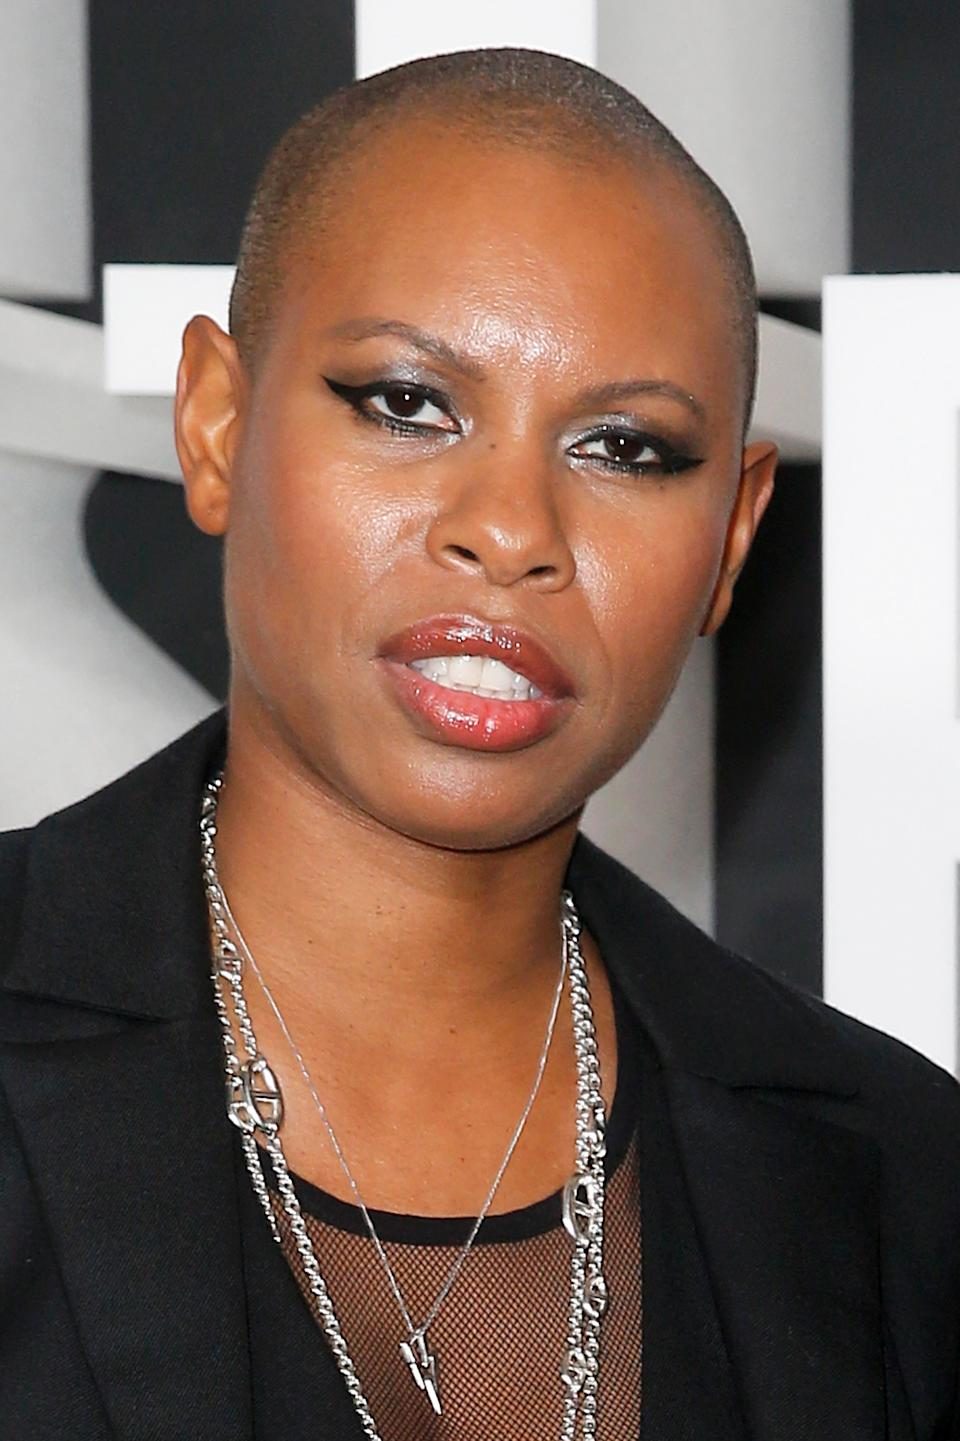 NEW YORK, NEW YORK - OCTOBER 22: Skin of Skunk Anansie attends the Nordstrom NYC Flagship Opening Party on on October 22, 2019 in New York City. (Photo by Dominik Bindl/WireImage)